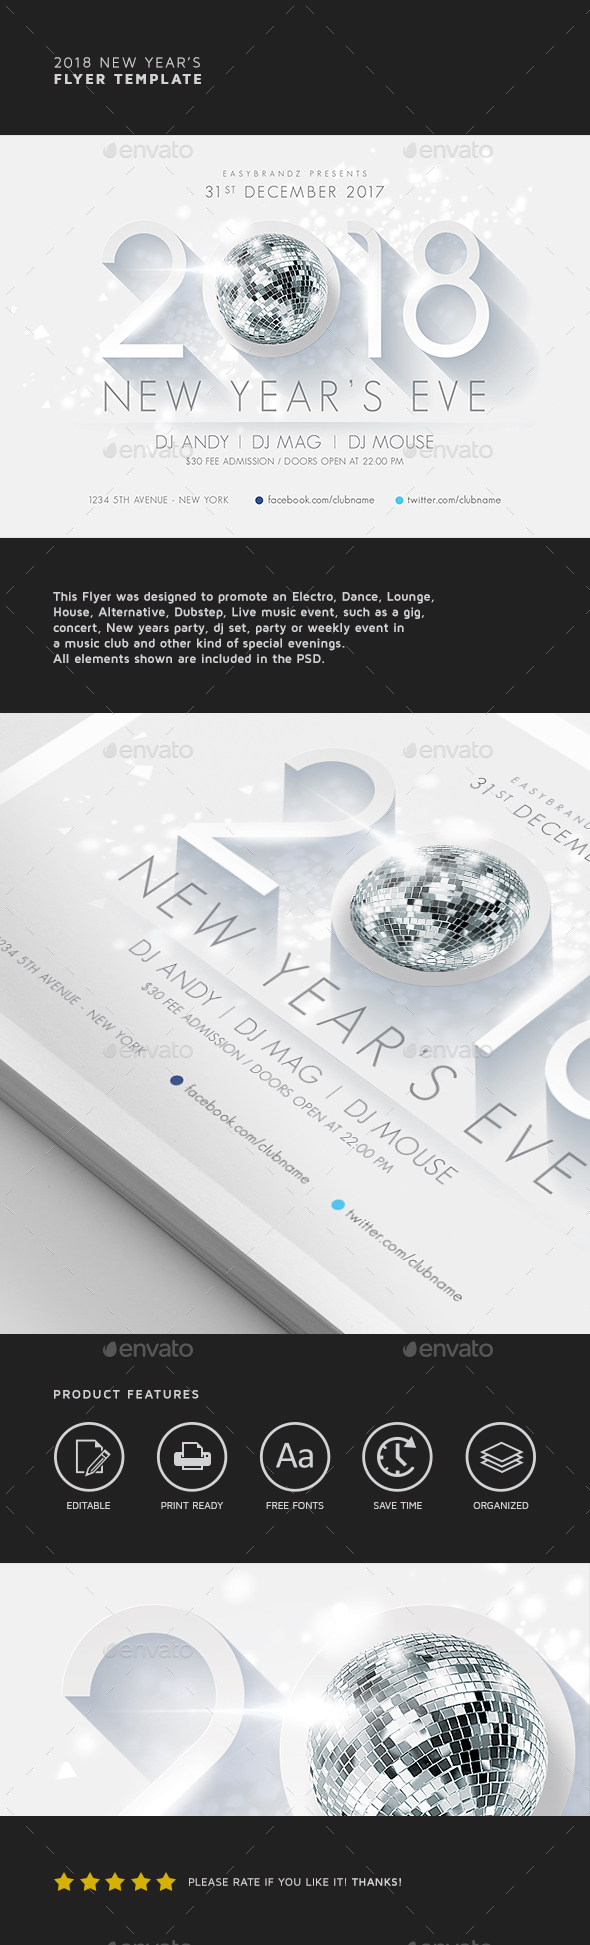 2018 New Year's Flyer Template - Holidays Events